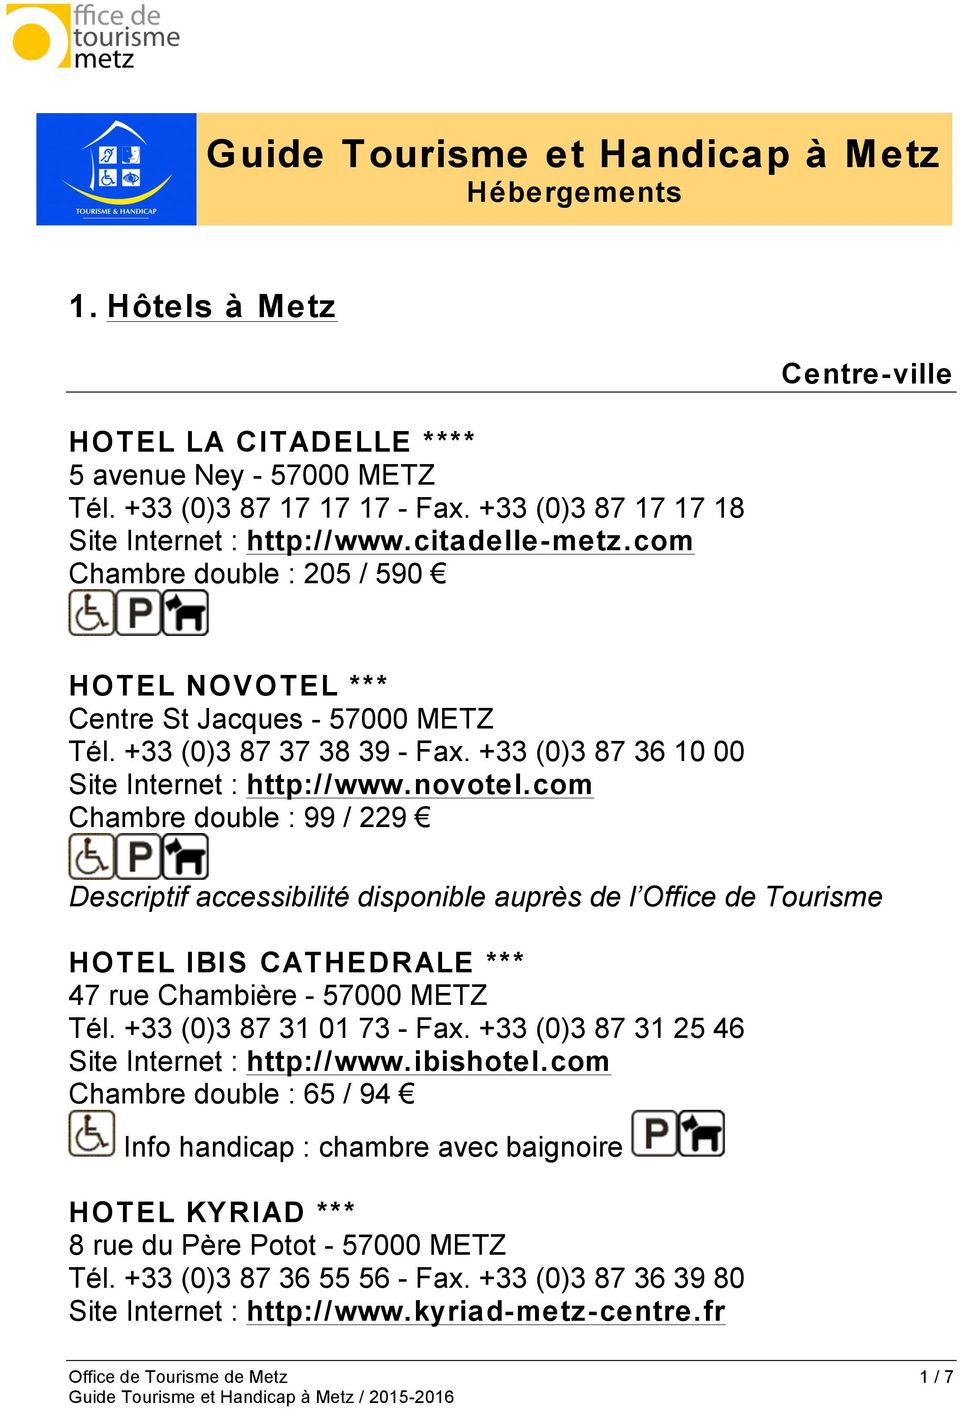 com Chambre double : 99 / 229 HOTEL IBIS CATHEDRALE *** 47 rue Chambière - 57000 METZ Tél. +33 (0)3 87 31 01 73 - Fax. +33 (0)3 87 31 25 46 Site Internet : http://www.ibishotel.